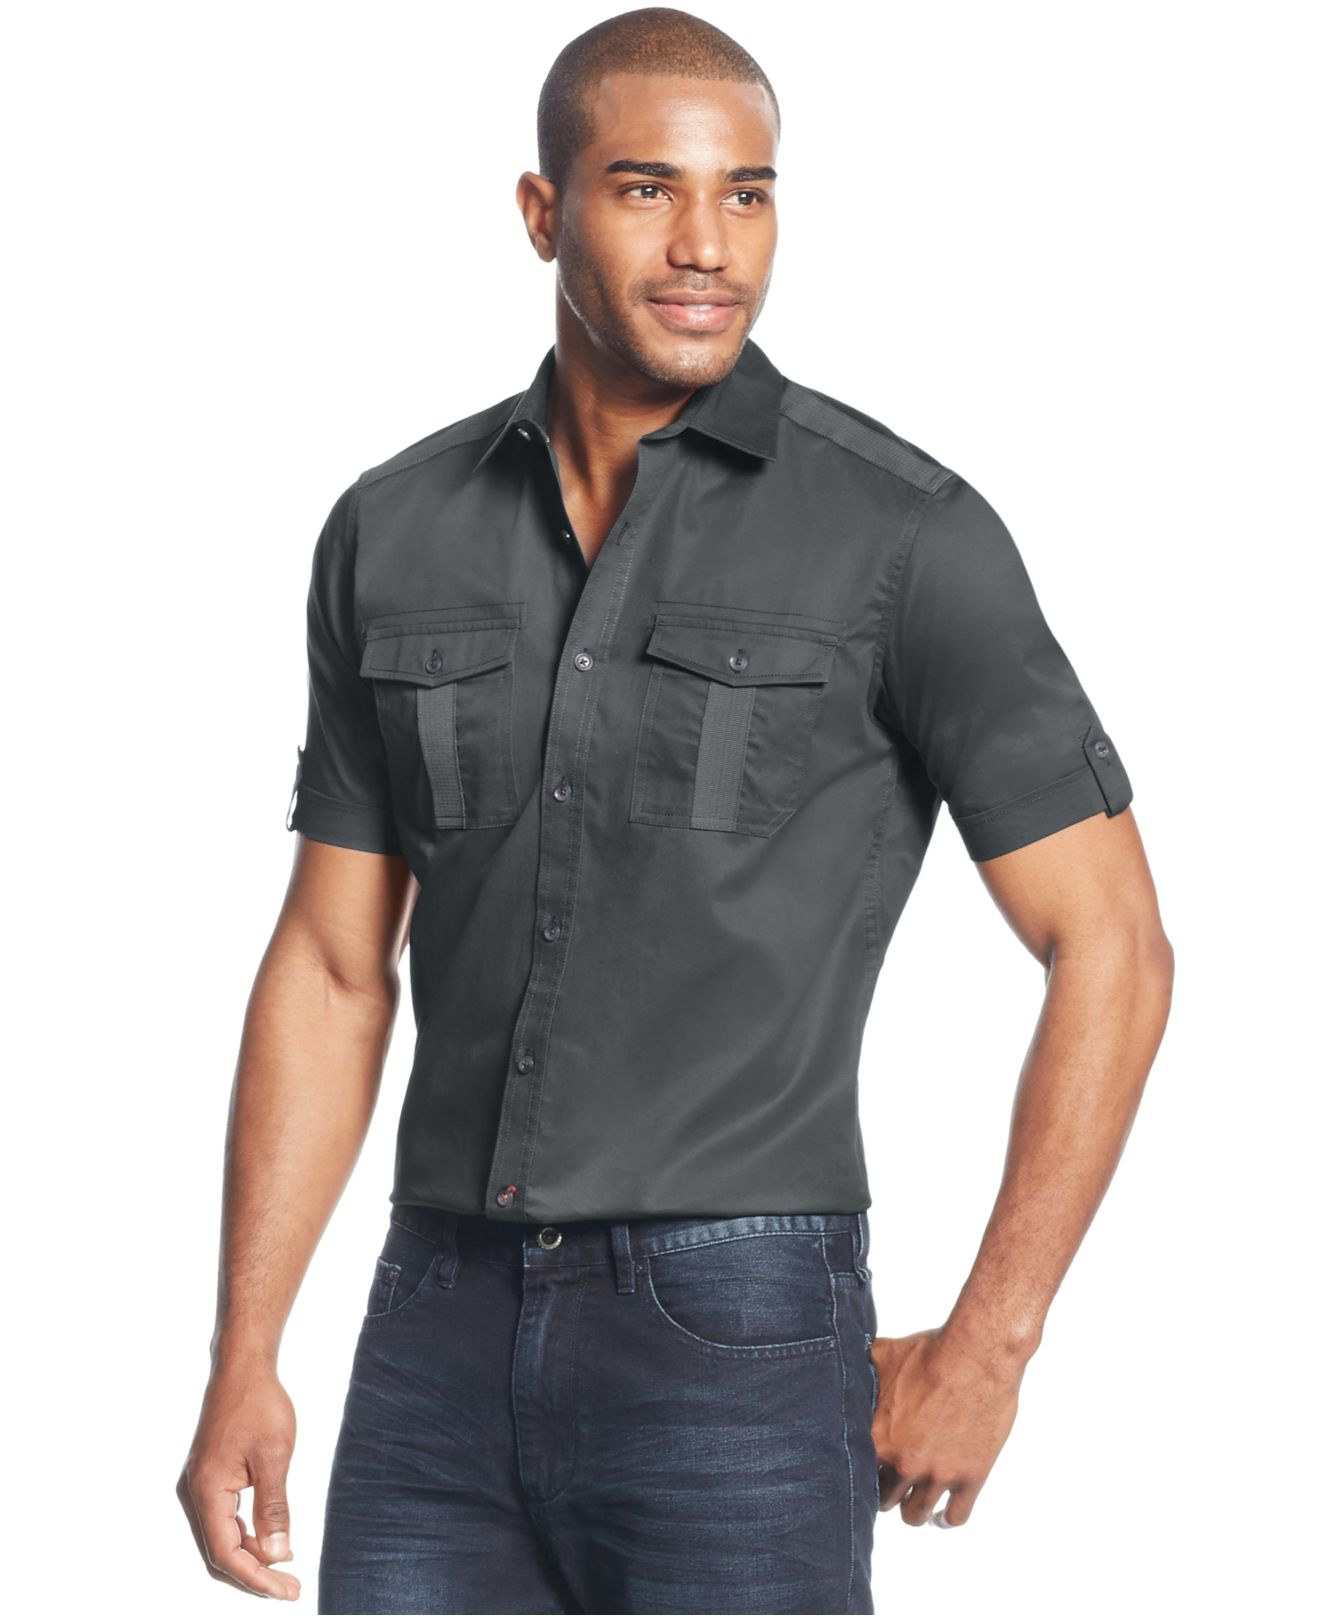 Lyst sean john big and tall twill shirt in gray for men for Sean john t shirts for mens